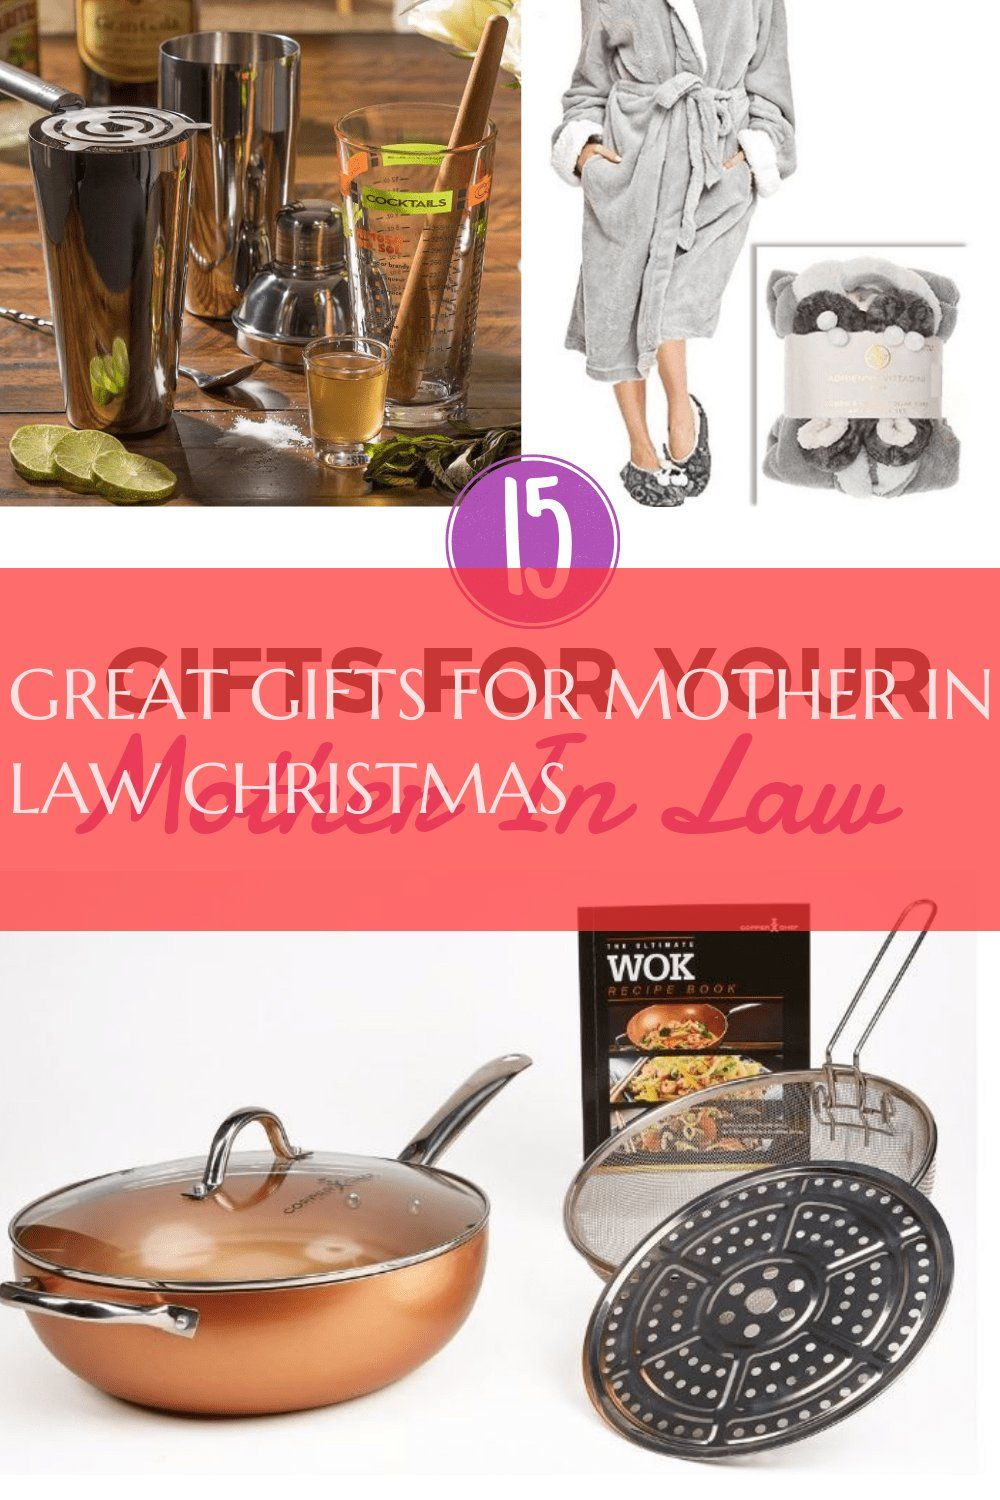 great gifts for mother in law christmas